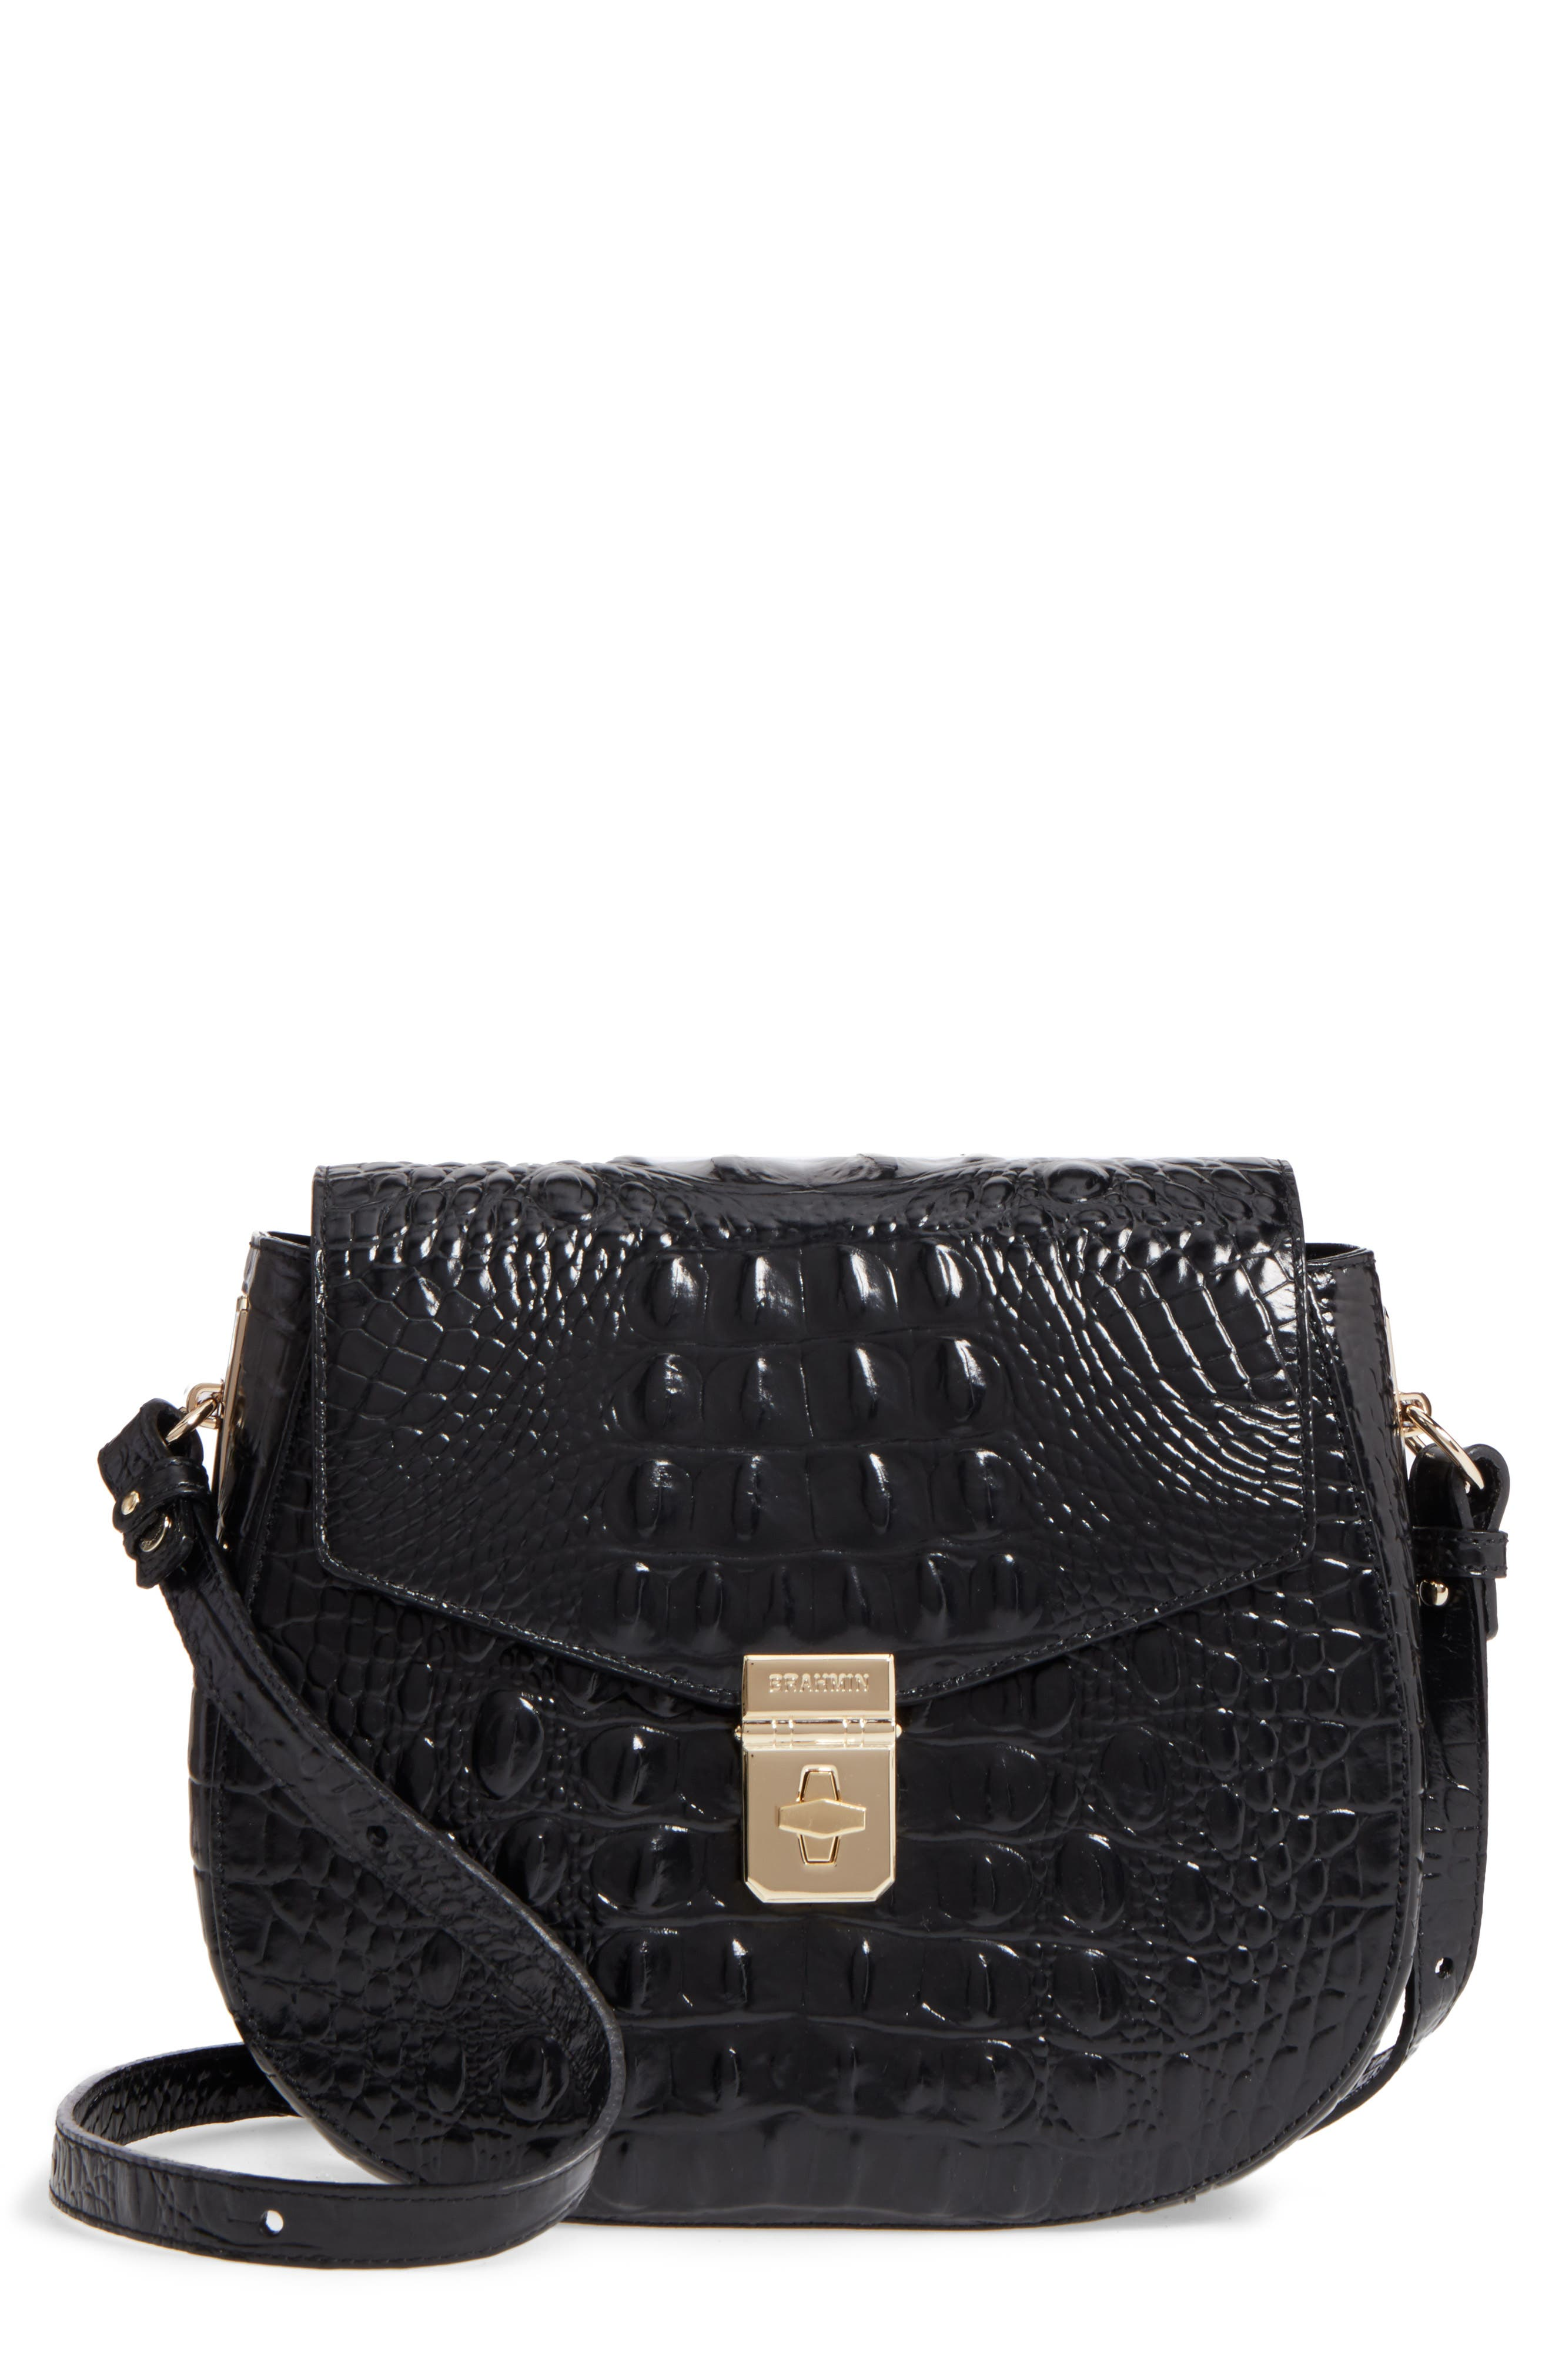 Alternate Image 1 Selected - Brahmin Melbourne - Lizzie Leather Crossbody Bag